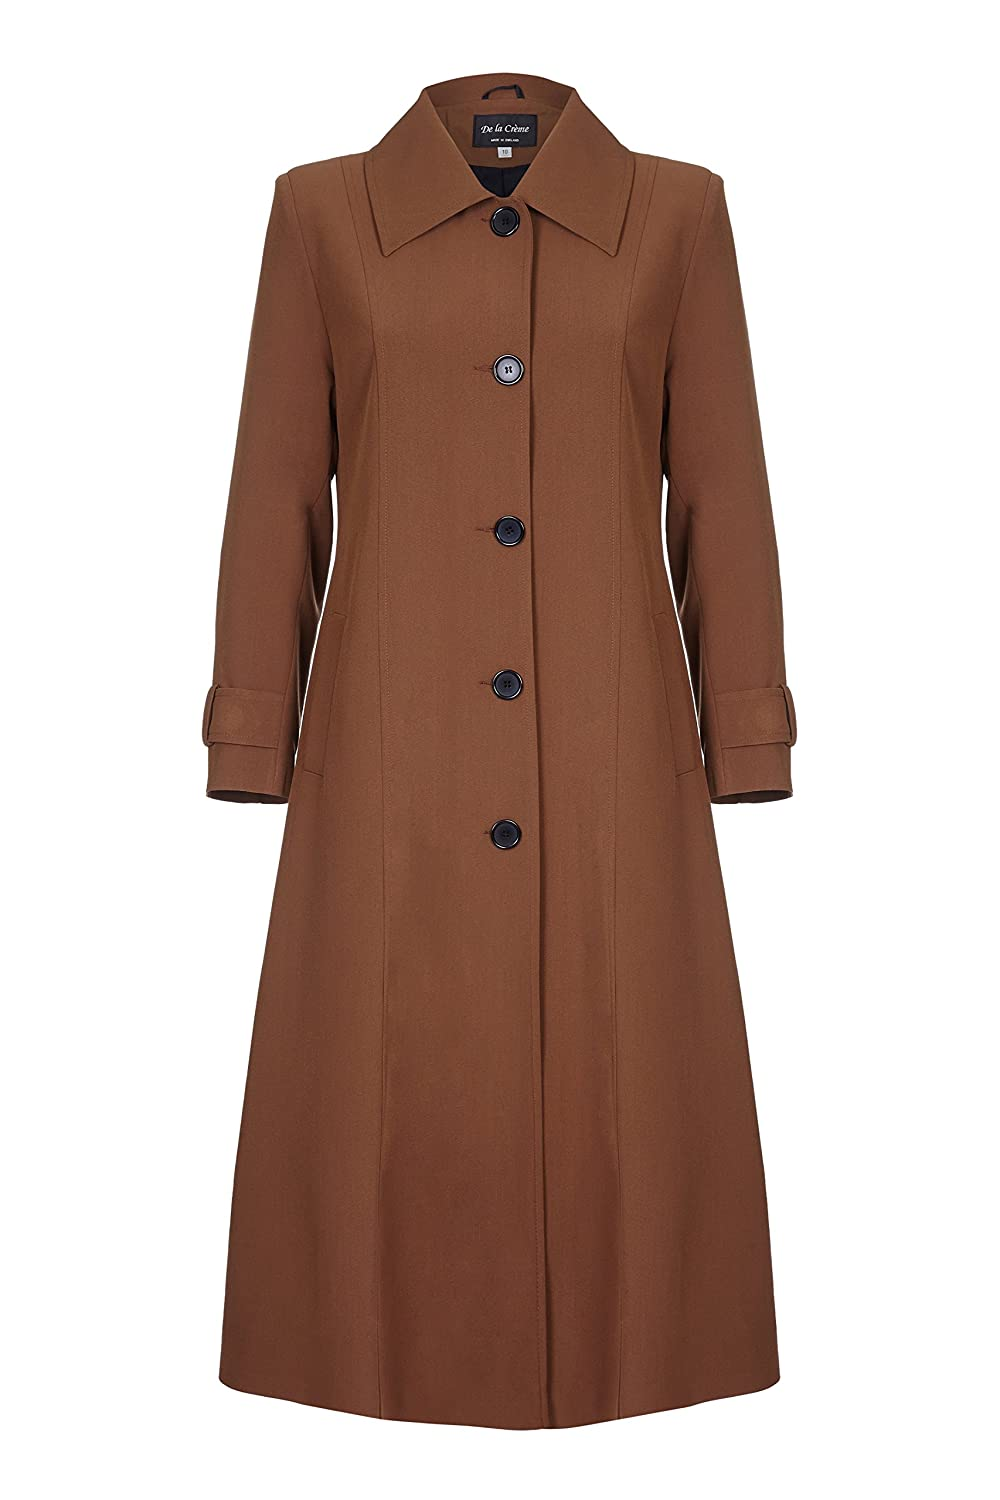 De La Creme - Womens Spring Long Raincoat Coat R10123-Parent